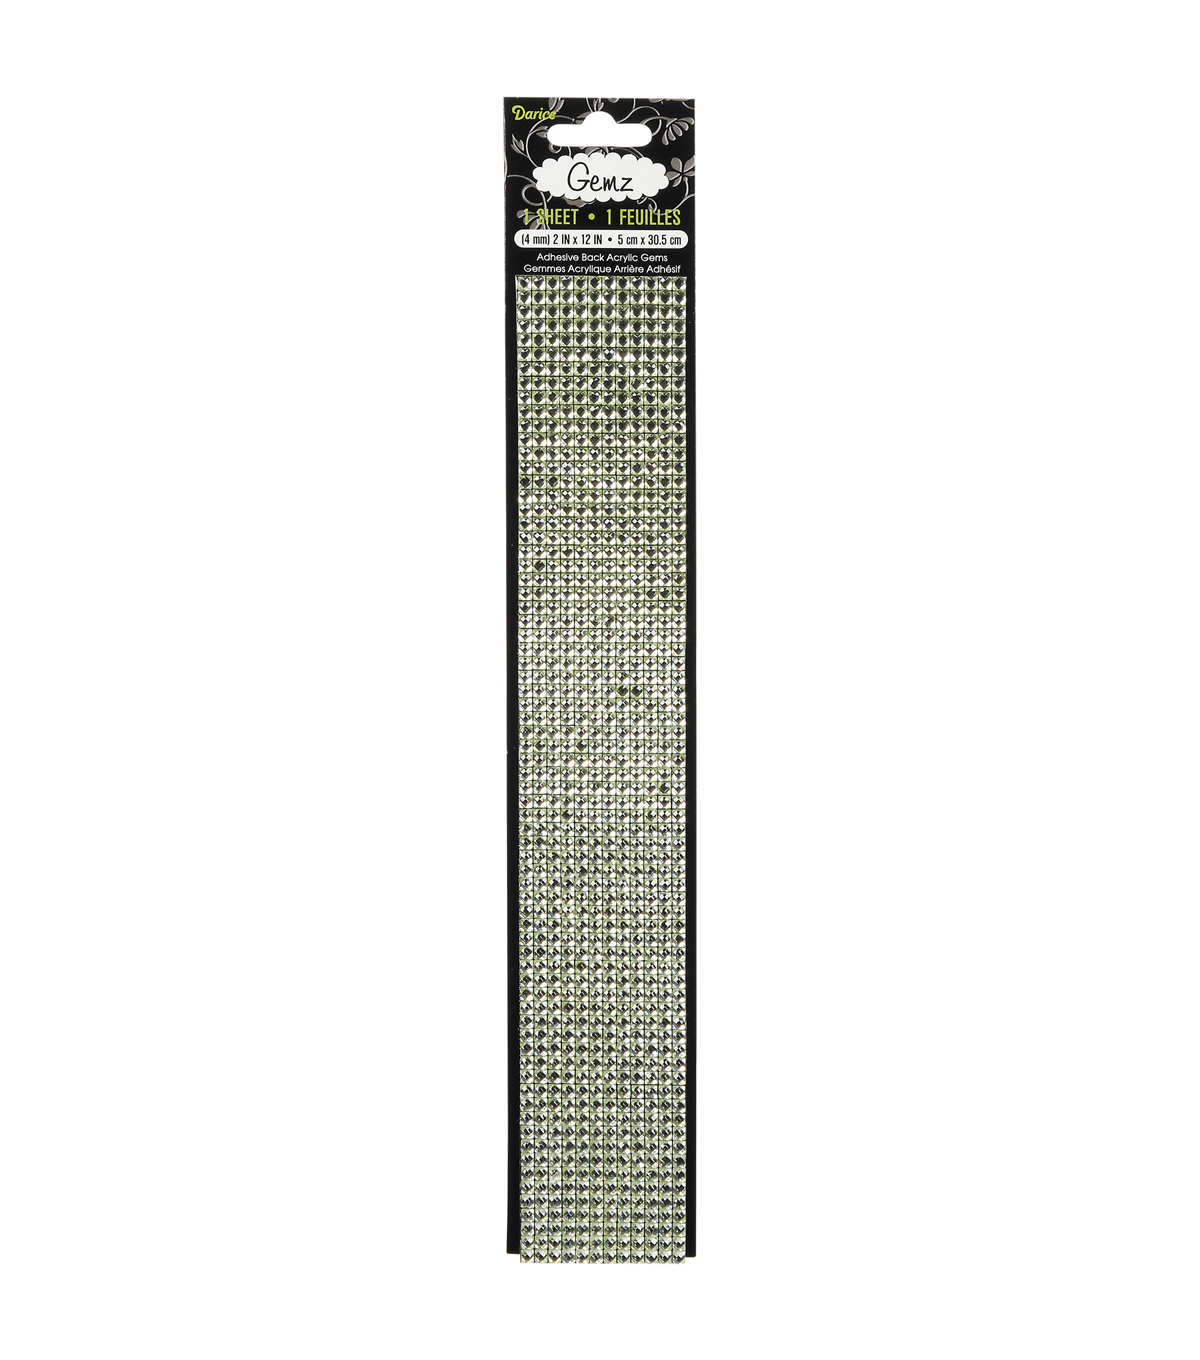 Gemz Self-Stick 4mm Black Diamond Gems, 2\u0022 x 12\u0022 Sheet